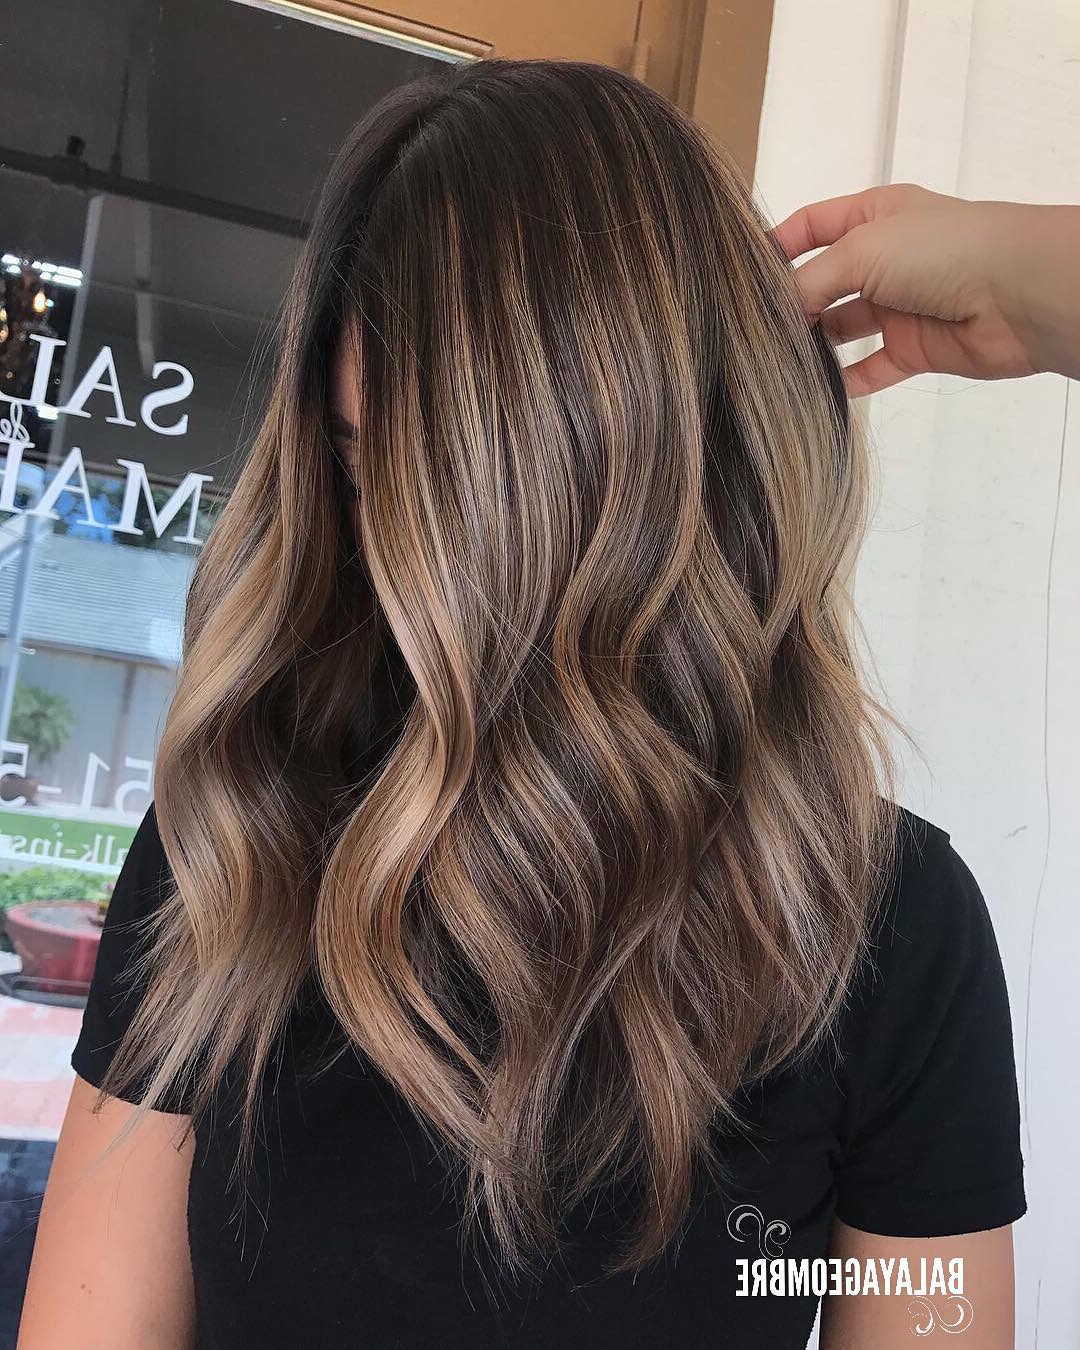 10 Best Medium Layered Hairstyles 2019 – Brown & Ash Blonde Fashion Regarding Most Up To Date Long Thick Haircuts With Medium Layers (Gallery 7 of 20)